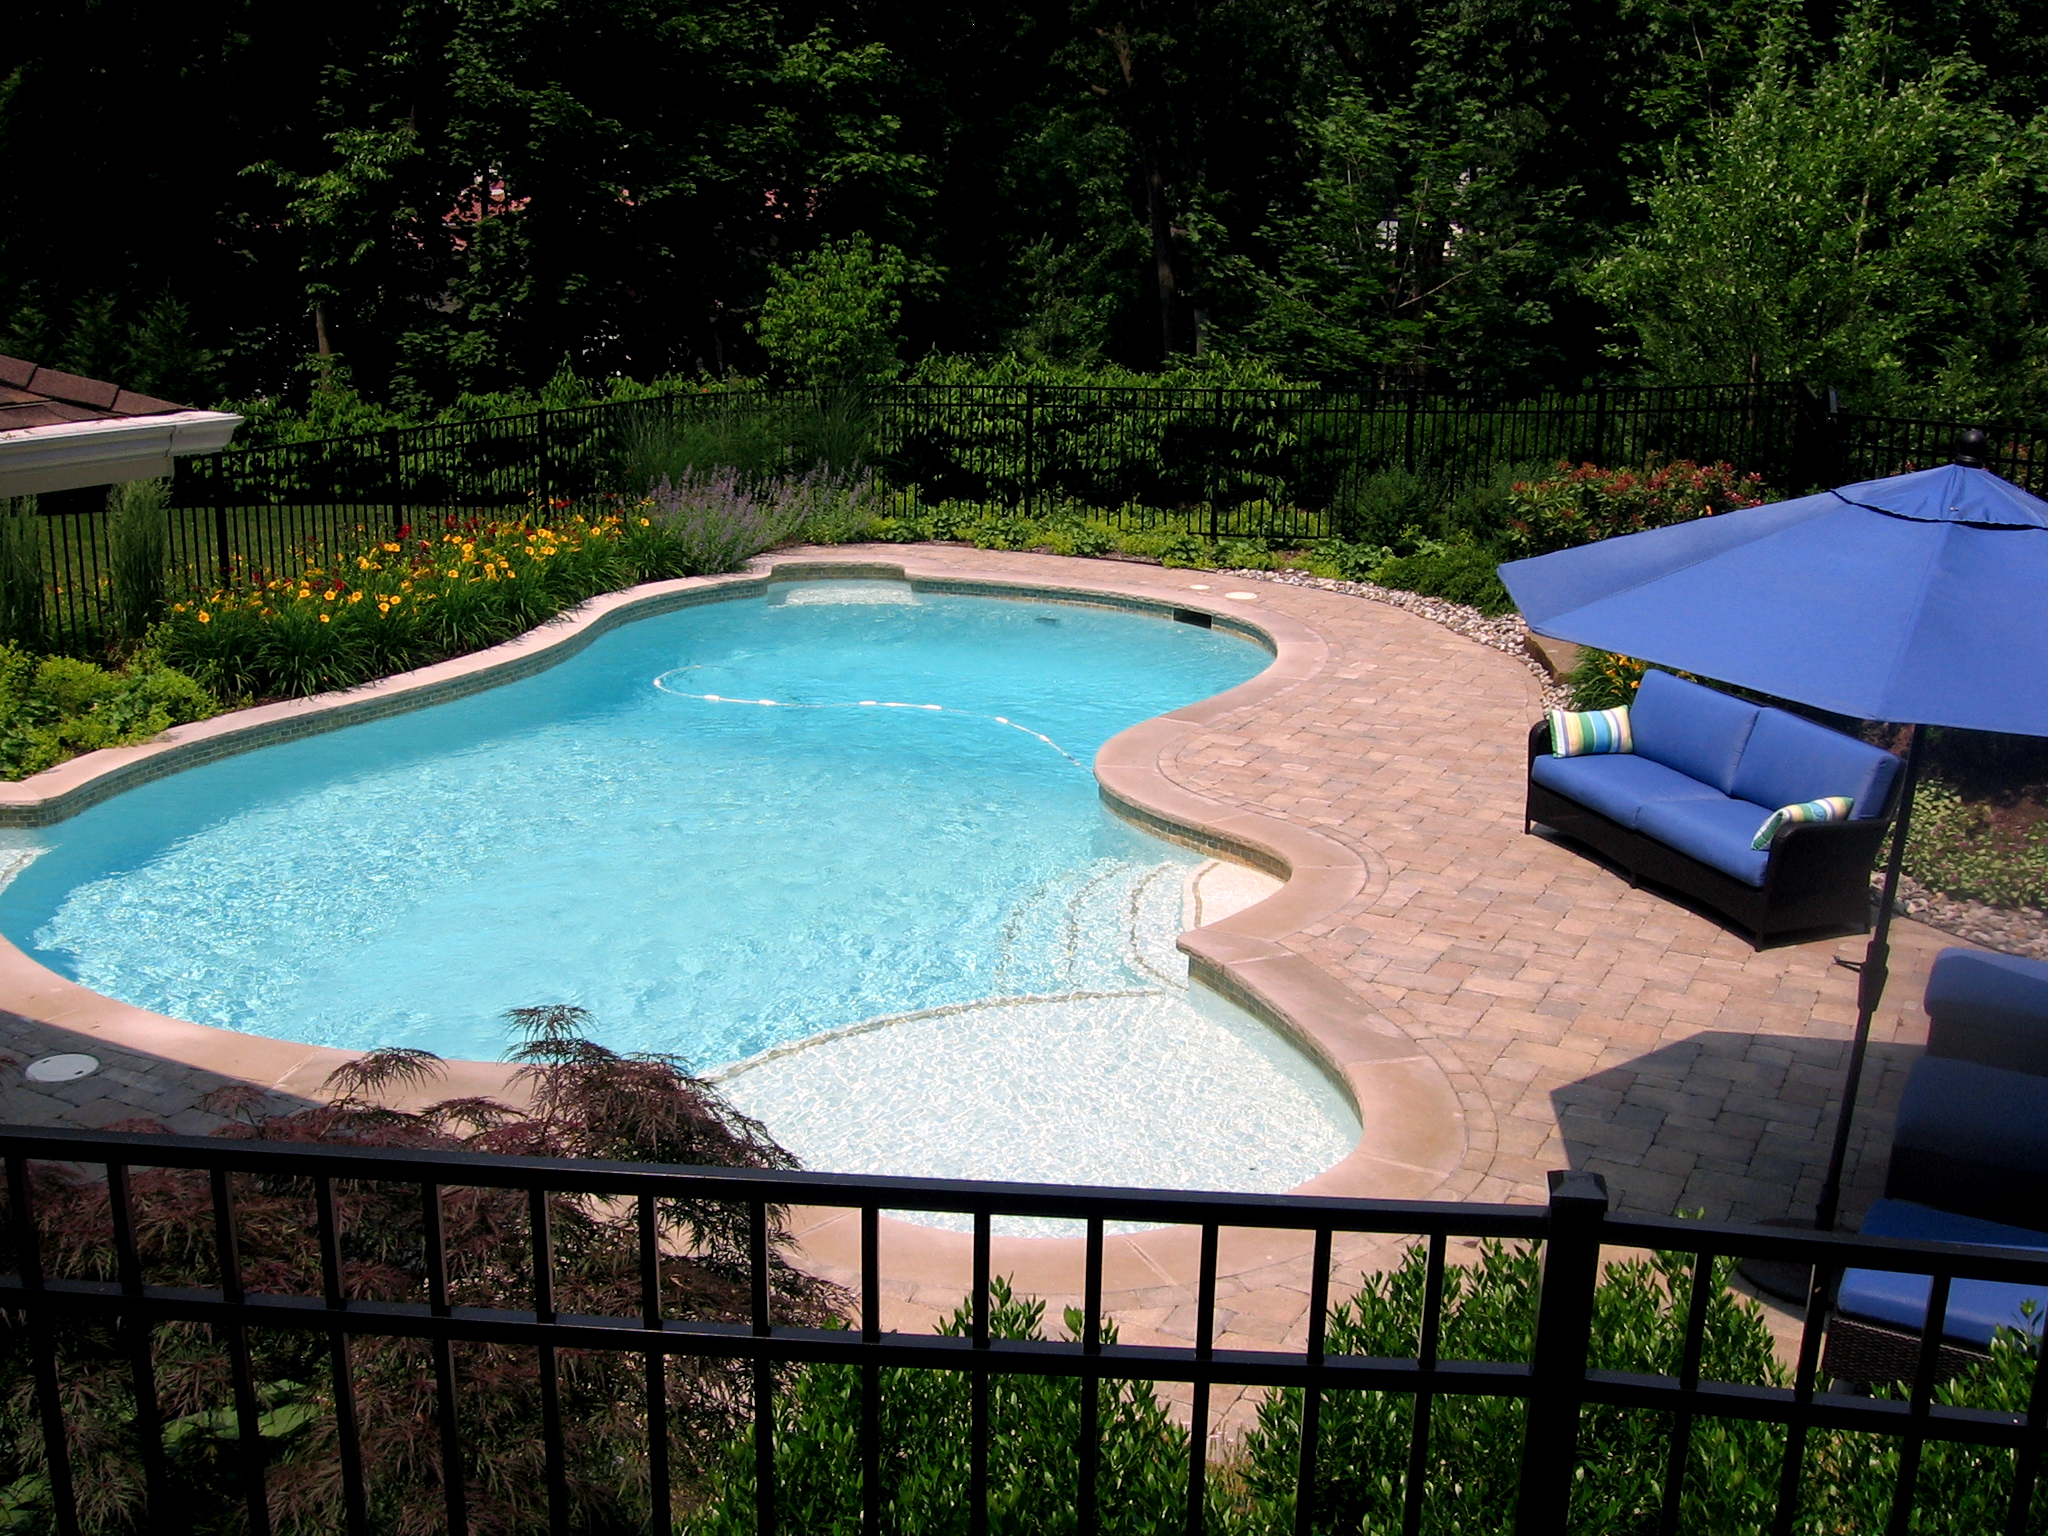 01398076755Fencing Design and Installation HOW TO AVOID POOL FENCING DESIGN & INSTALLATION MISTAKES  BERGEN COUNTY NJ